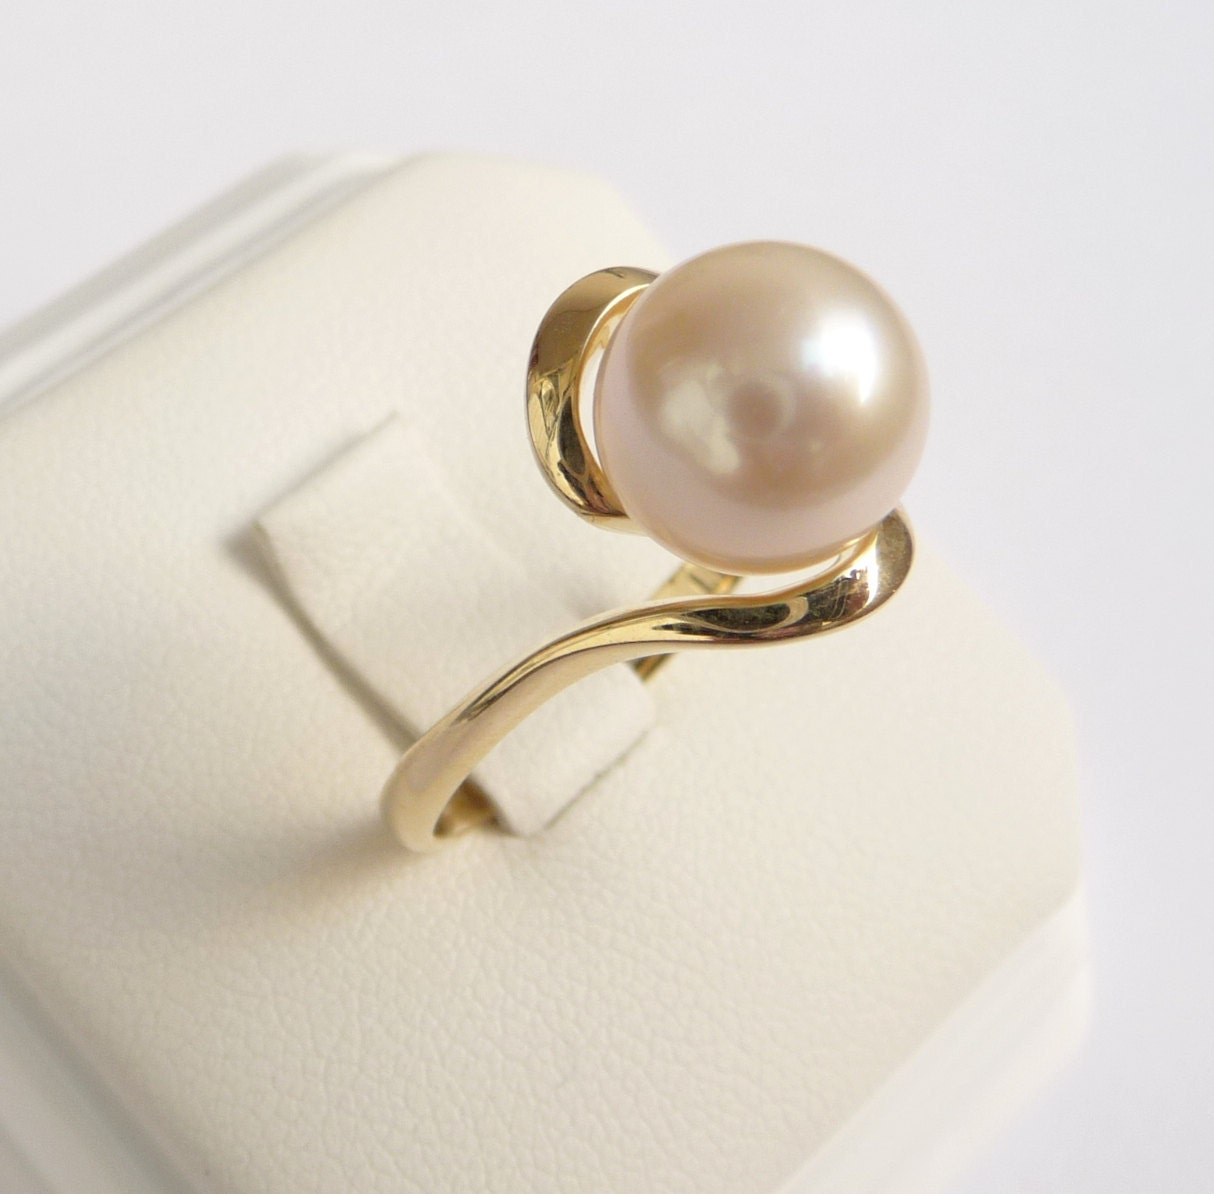 Pearl ring gold ring womens pearl engagement ring for Pearl engagement ring with wedding band